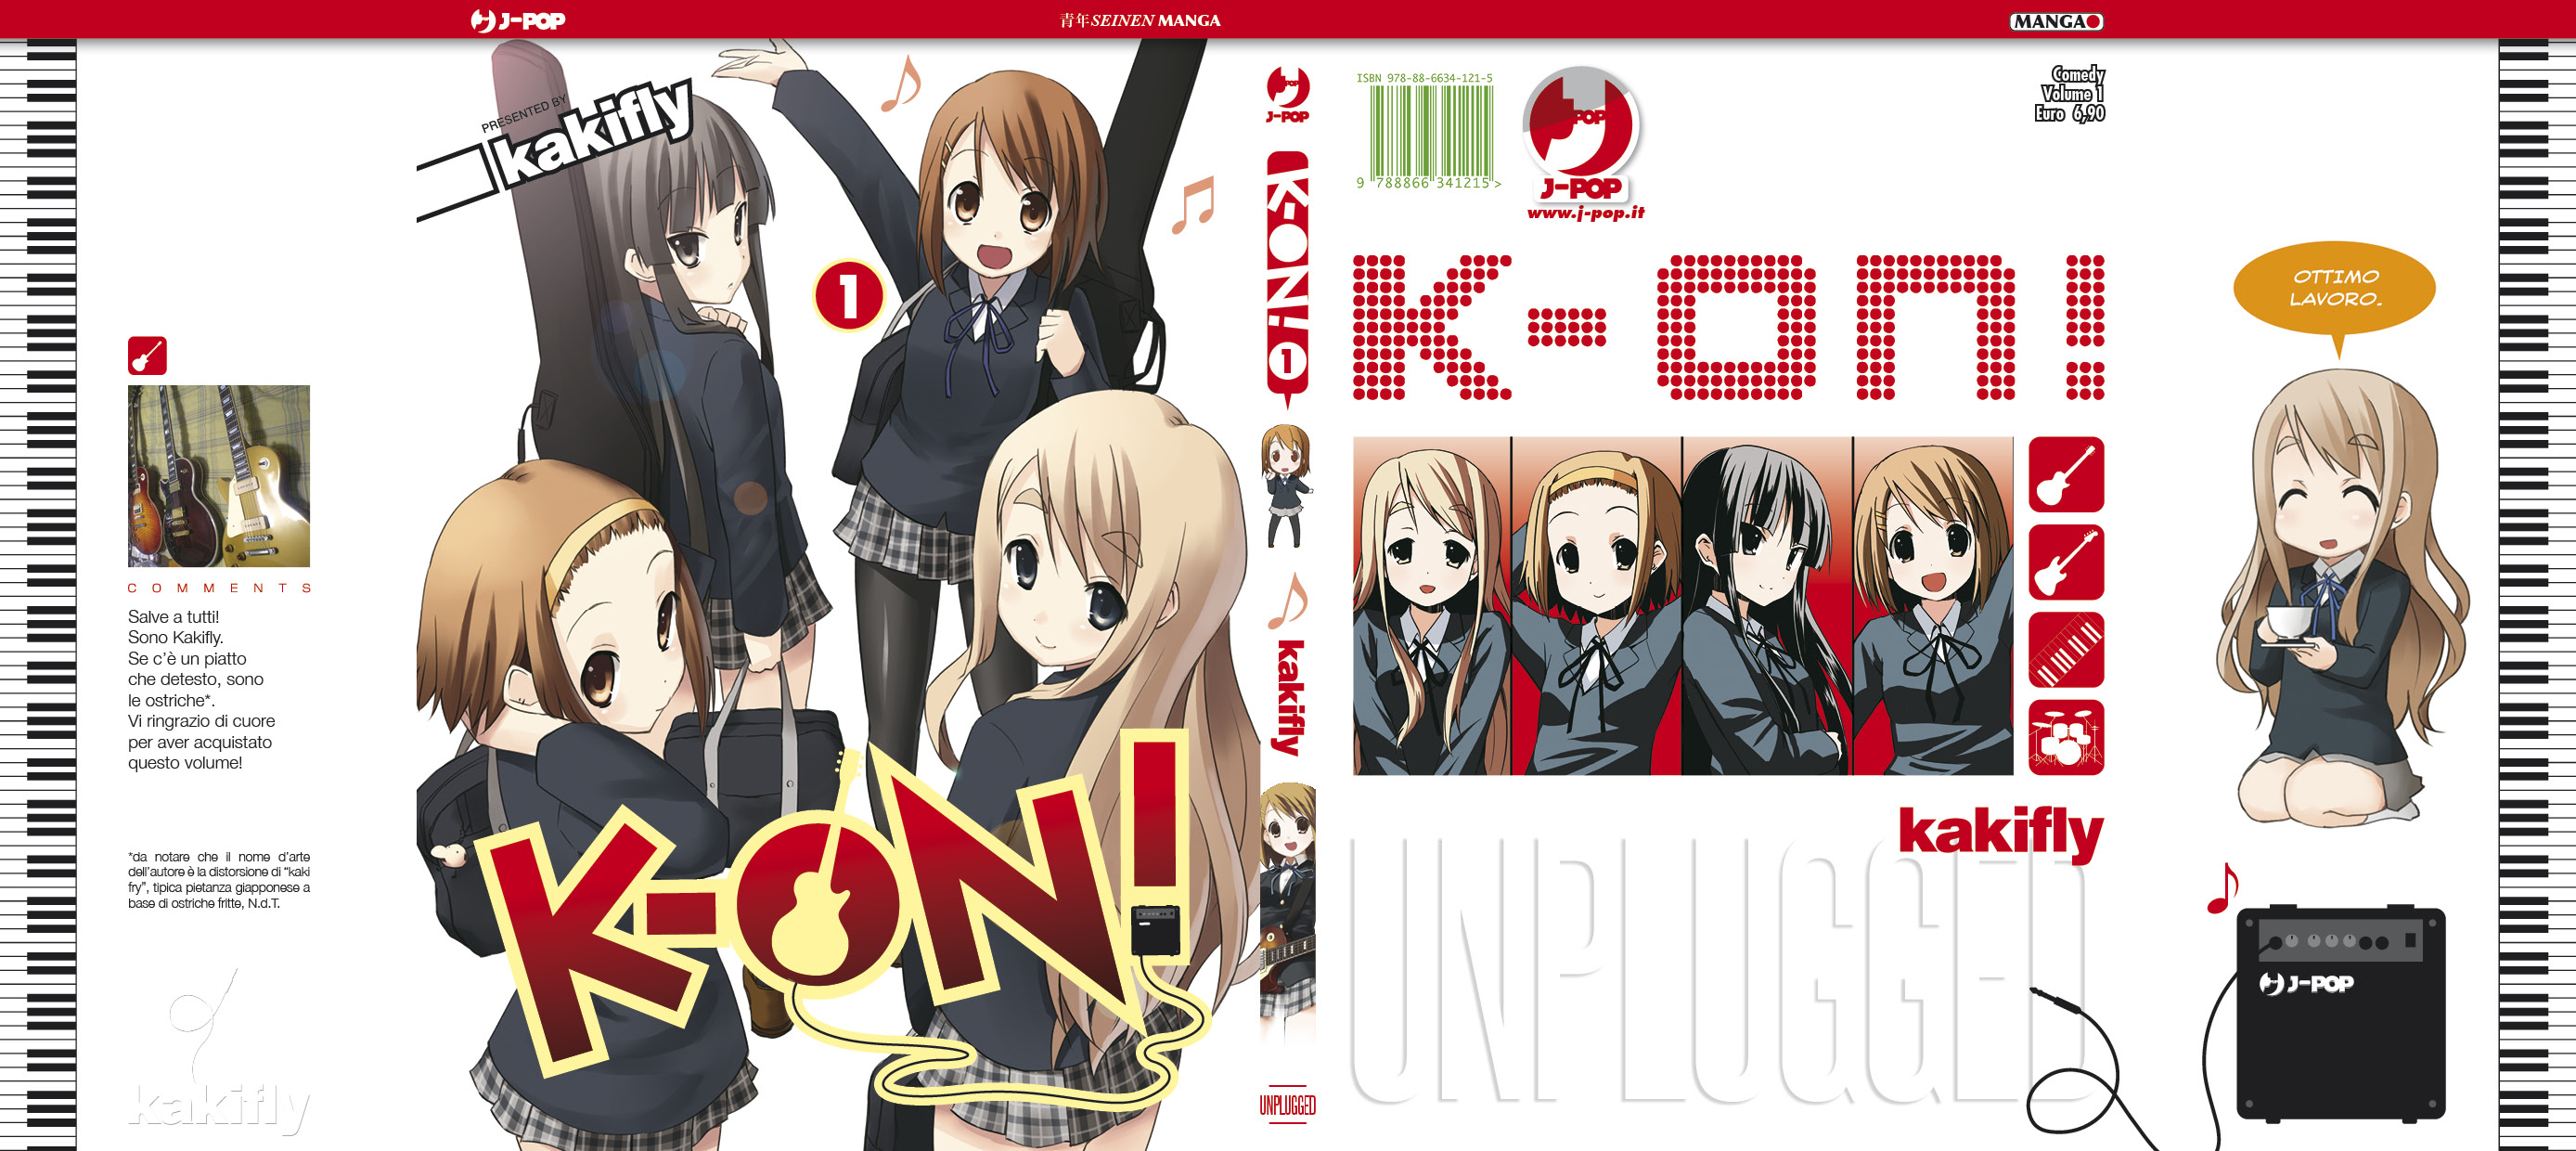 K-On 1 Variant cover esclusiva J-Pop unplugged